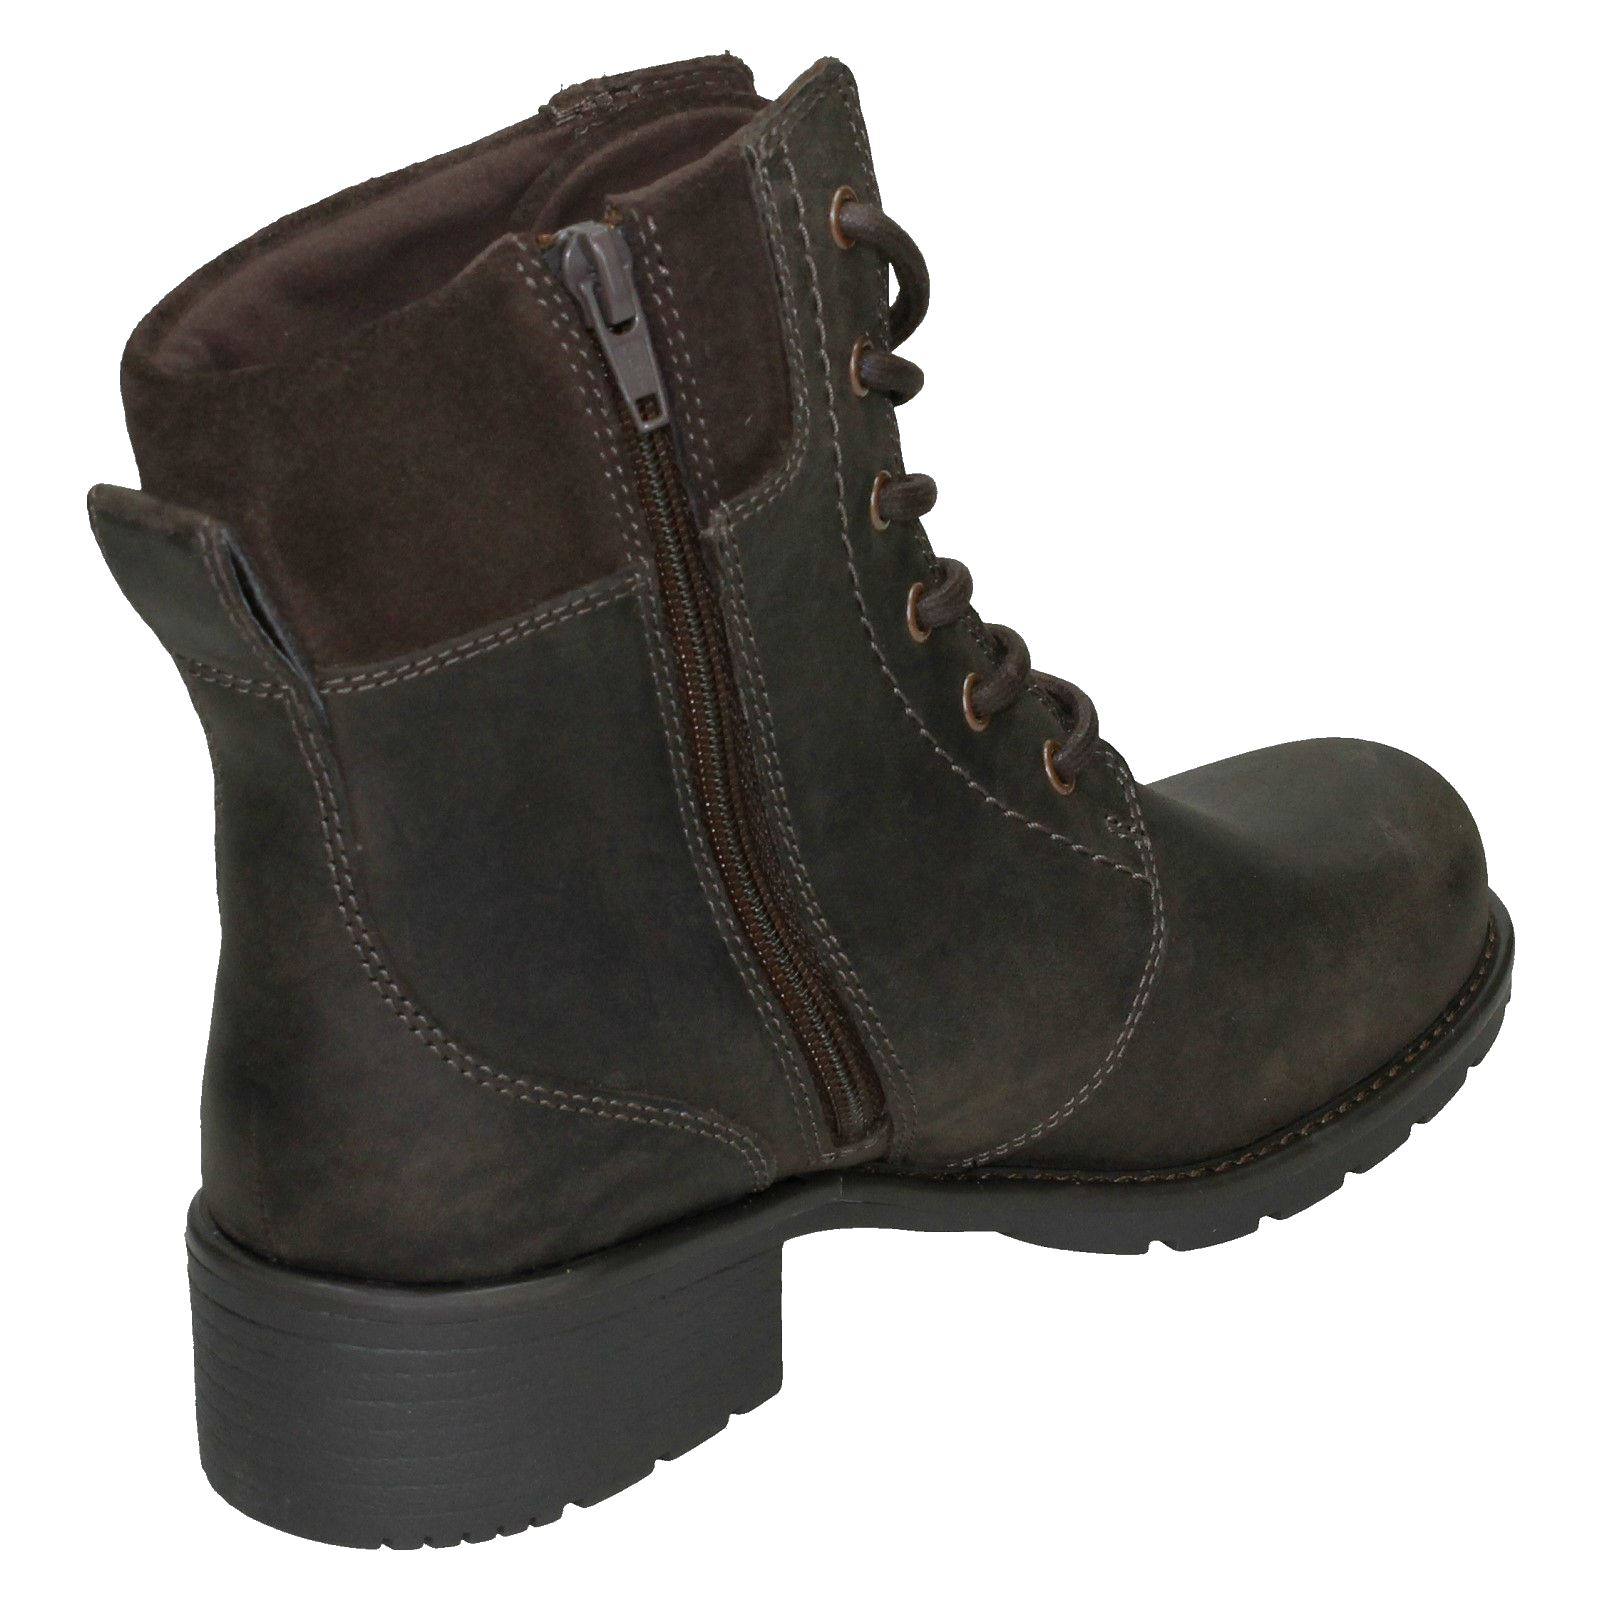 Ladies-Clarks-Casual-Lace-Up-Inside-Zip-Nubuck-Leather-Ankle-Boots-Orinoco-Spice thumbnail 33